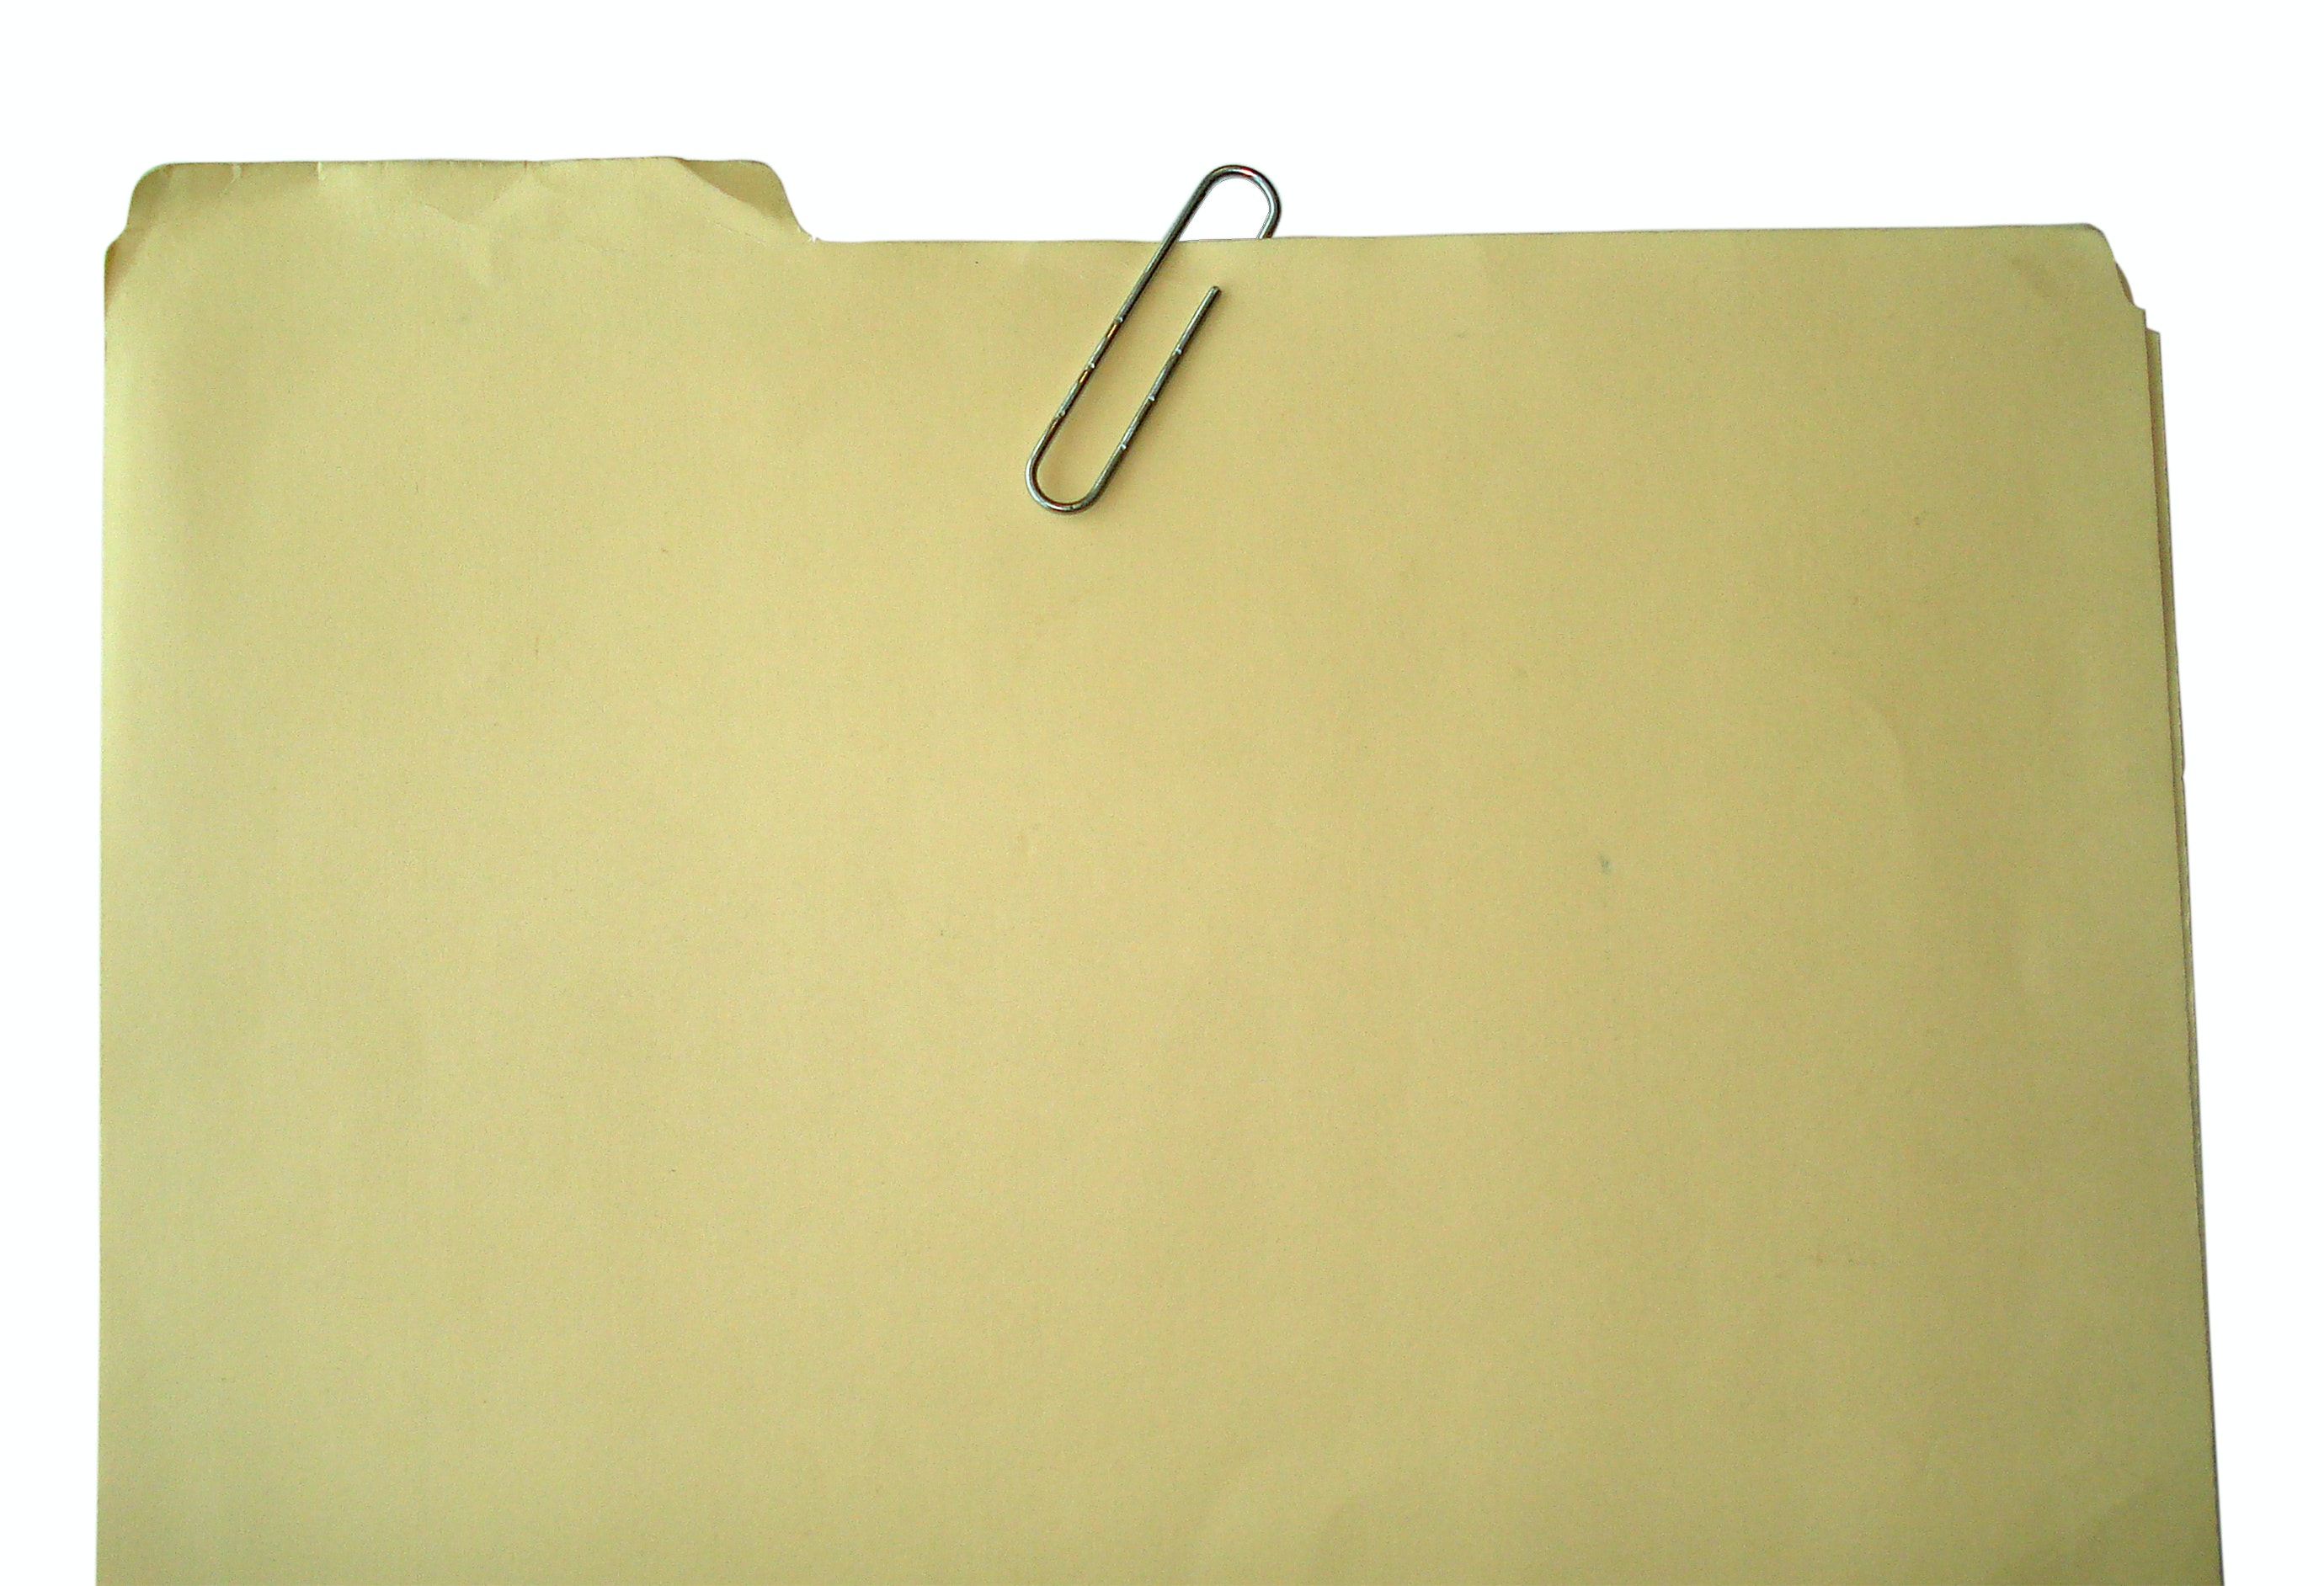 Folder with paper clip